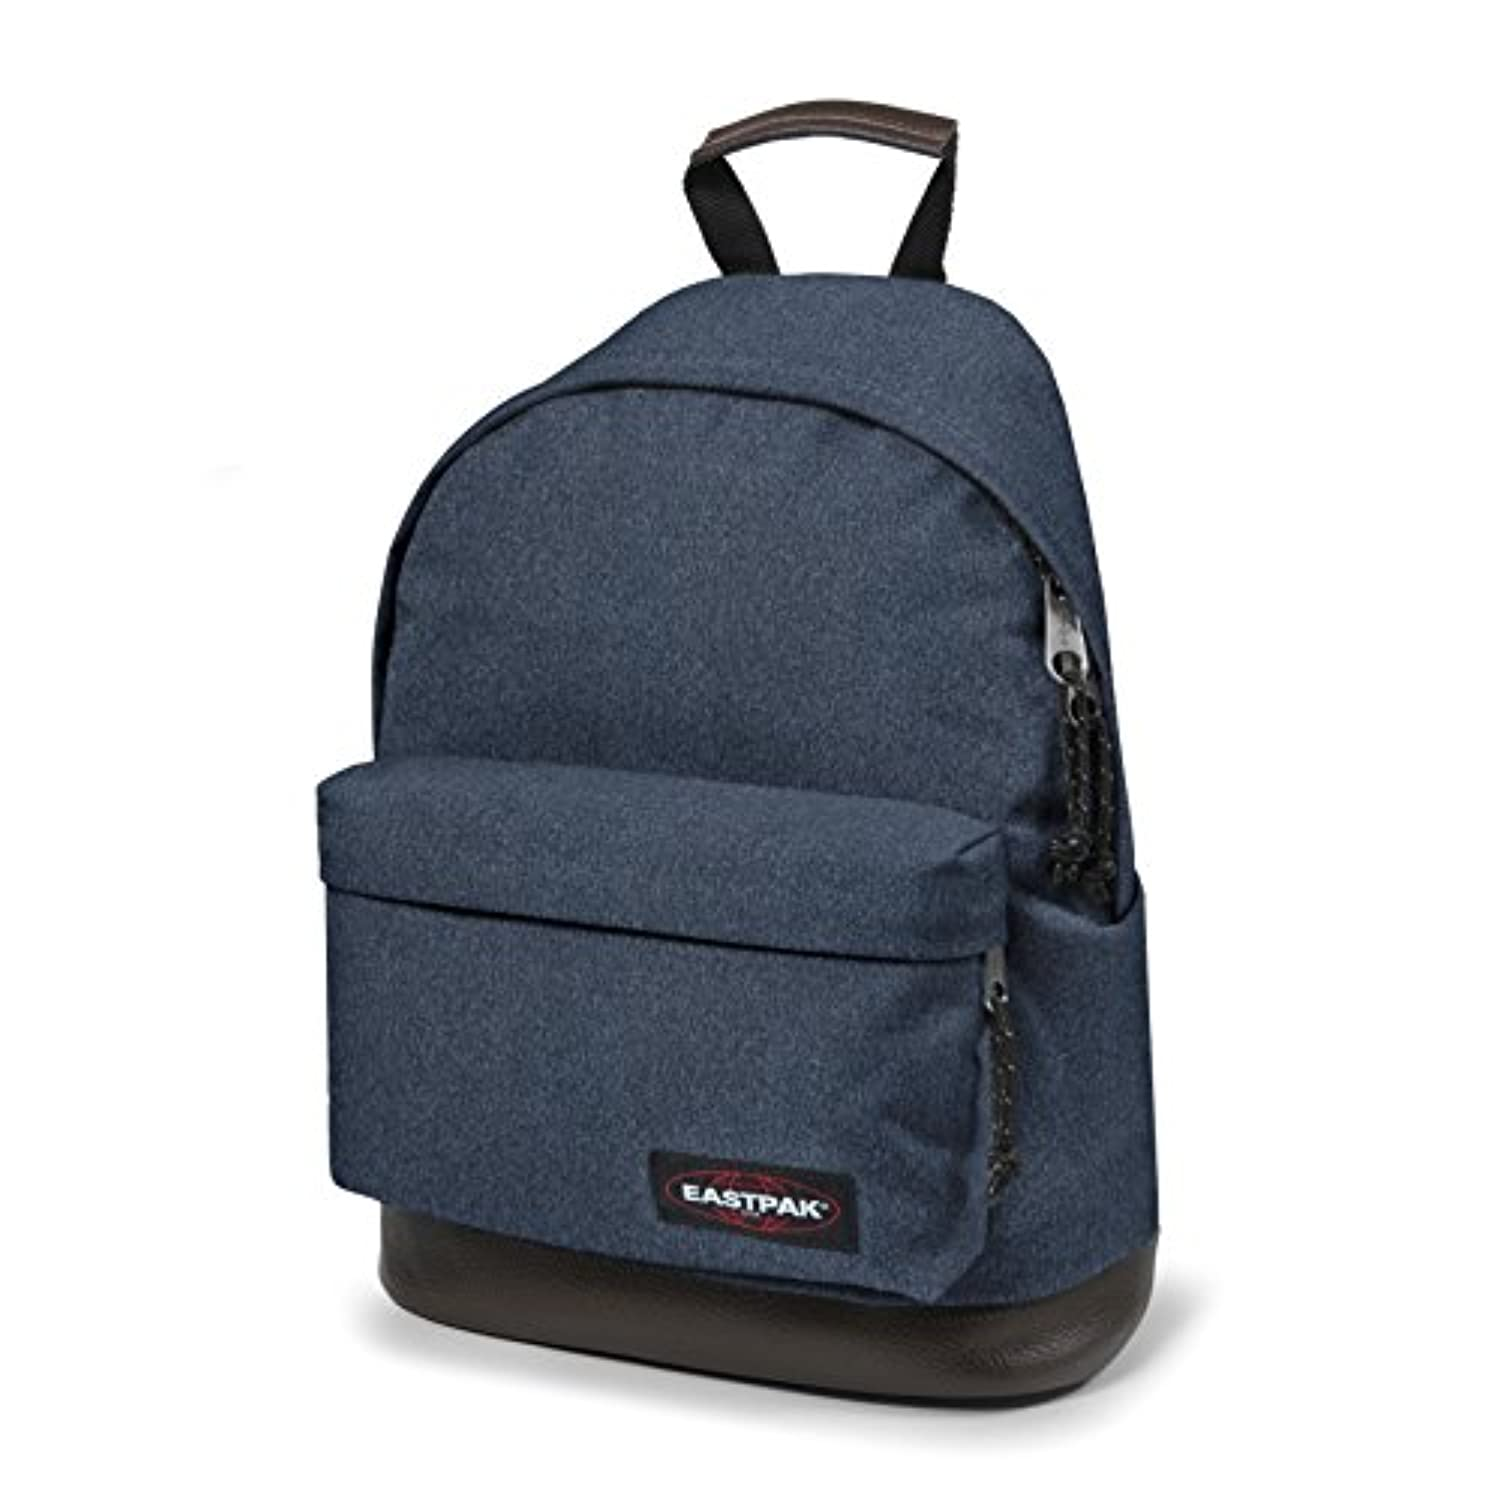 Dos Denim Sac L Eastpak Wyoming double 40 Cm 24 Modèle À Bleu xawtgRqtv